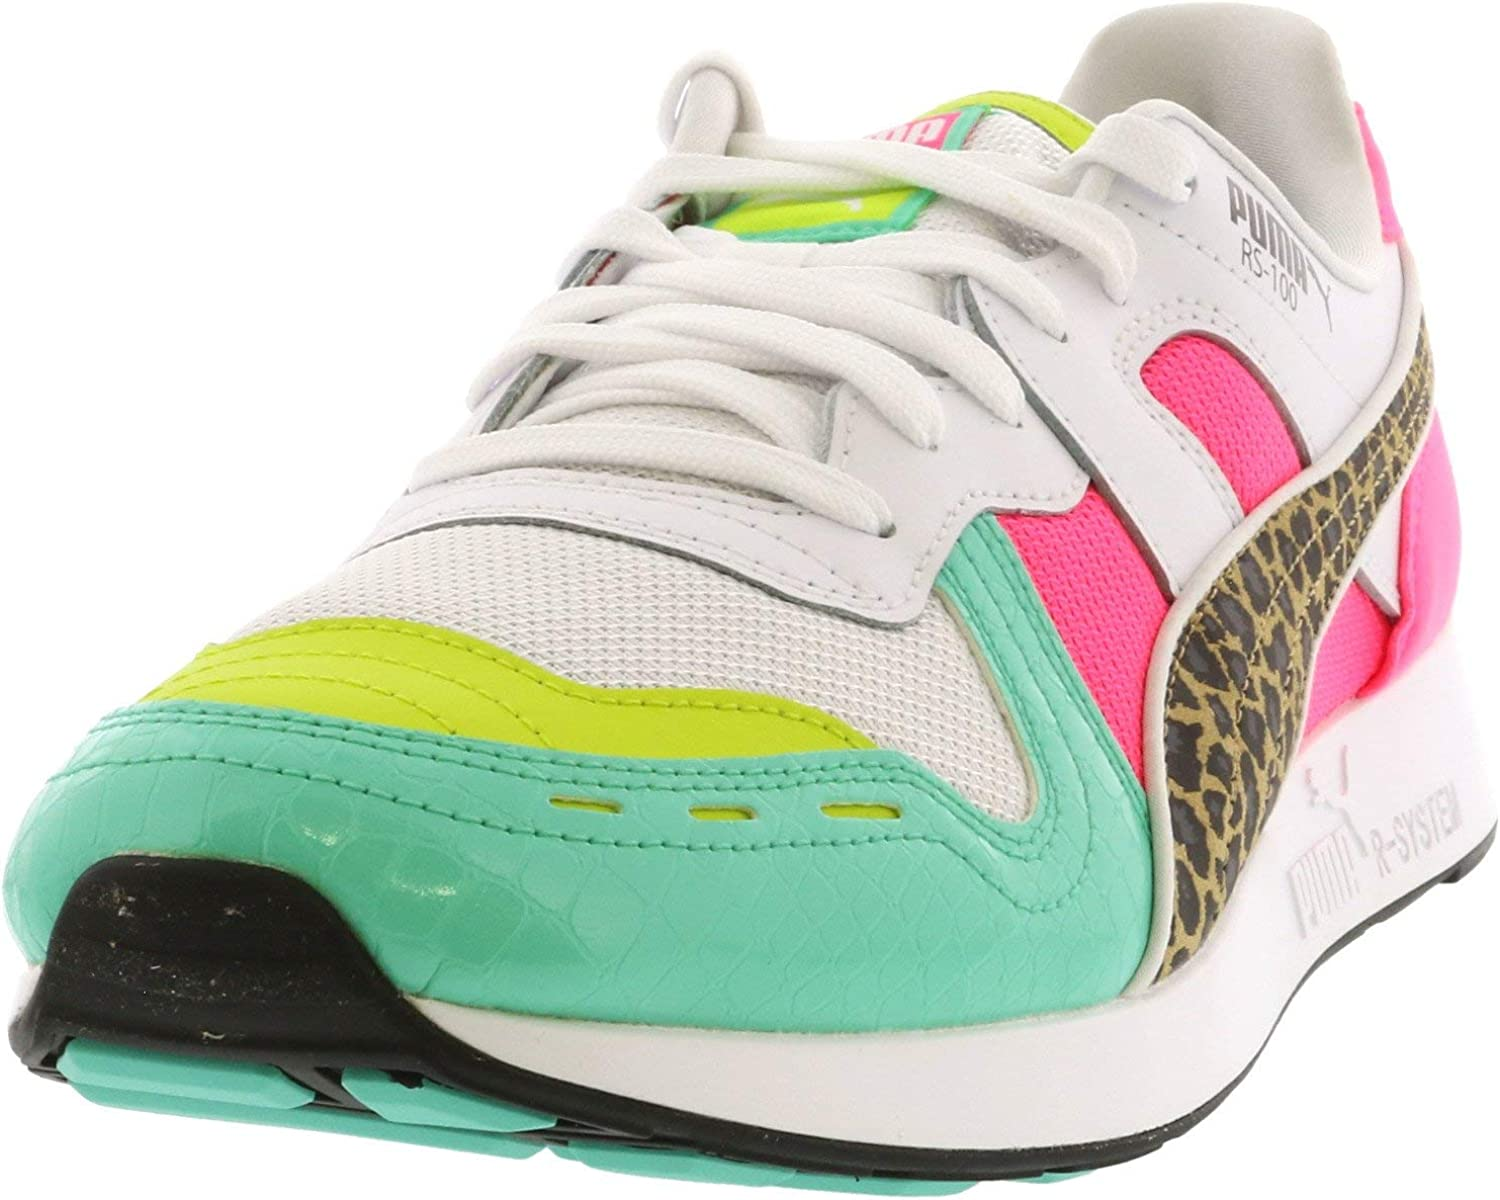 Jacksonville Mall PUMA mens Rs-100 Party Lace Croc Sale Special Price Sneakers Up